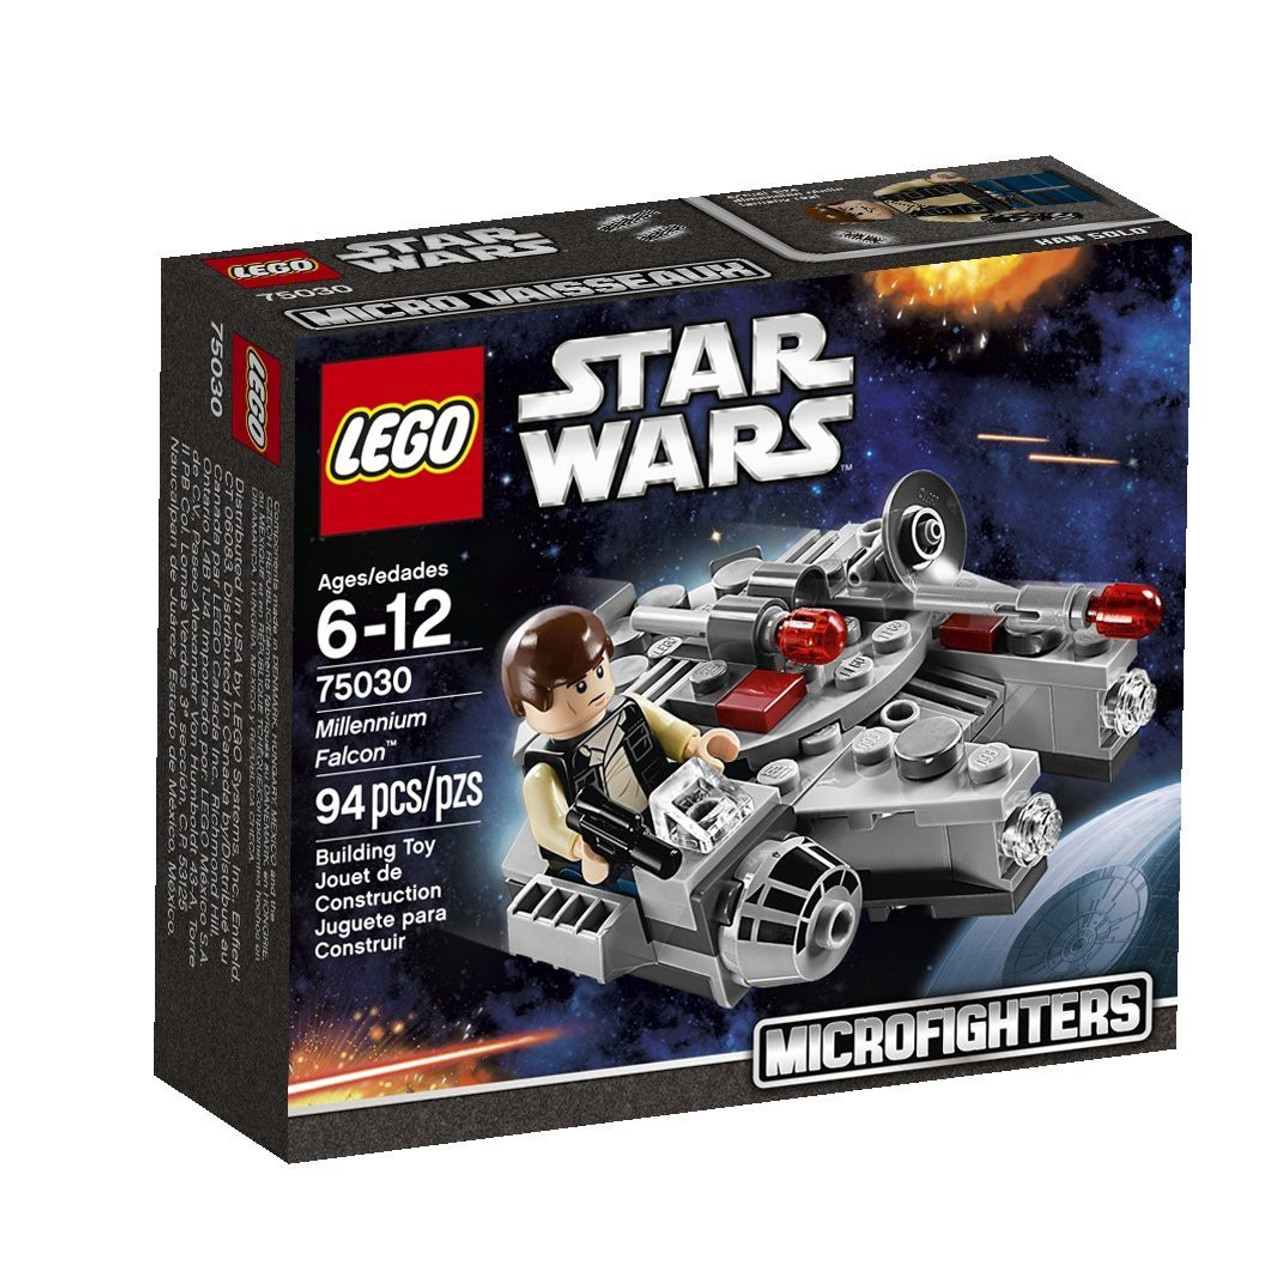 Lego Star Wars A New Hope Microfighters Millennium Falcon Set 75030